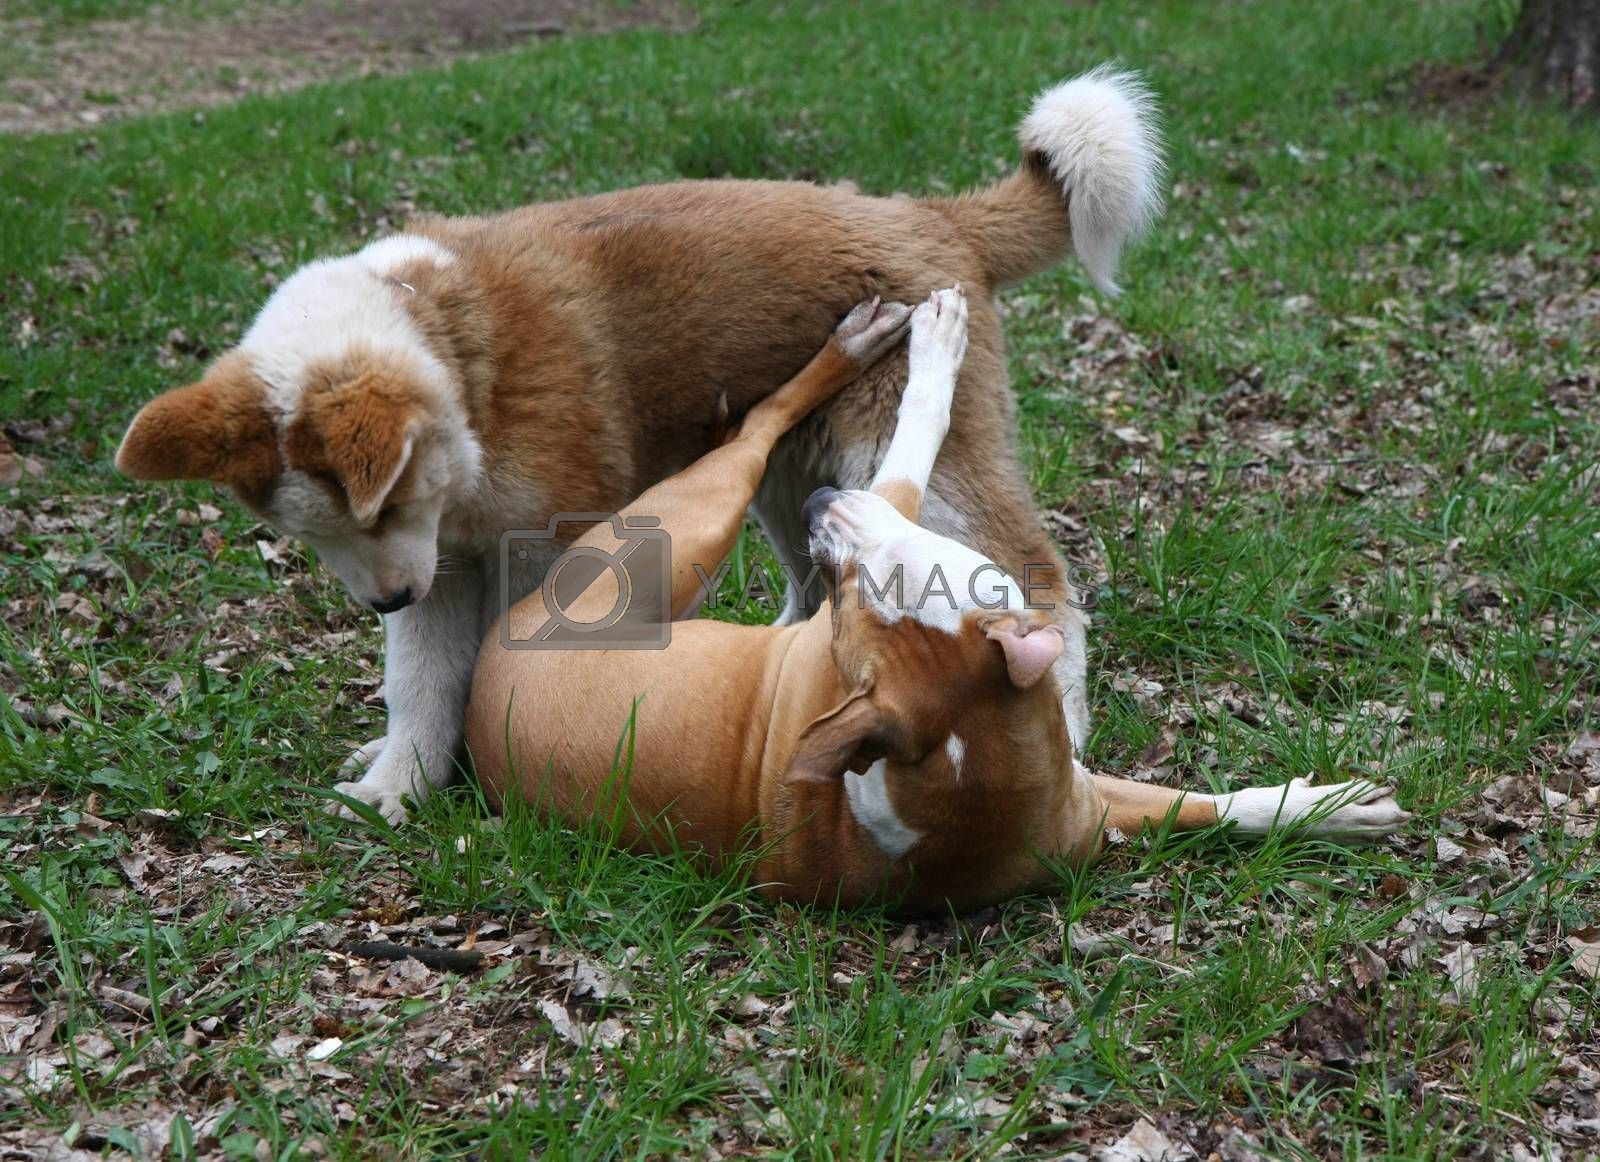 Cute puppies enjoying and playing in public park